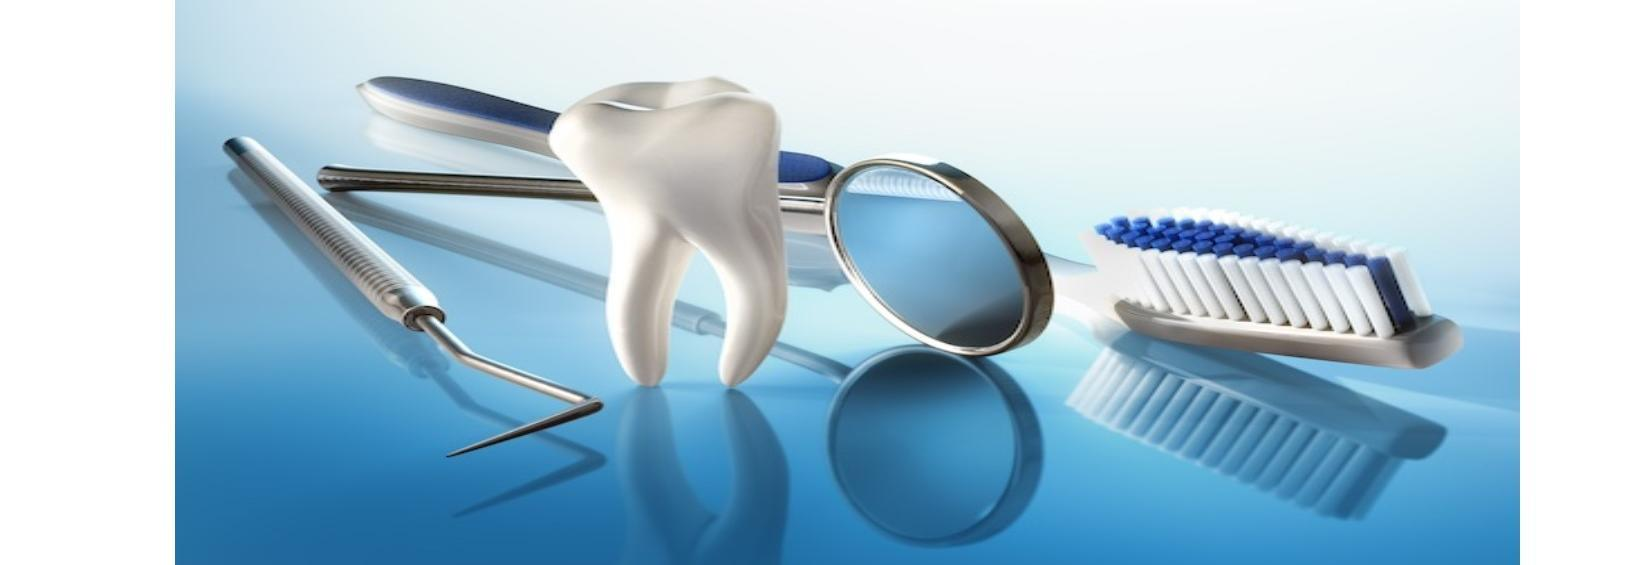 DFW Dental Service Invisalign Family Cosmetic Implants banner